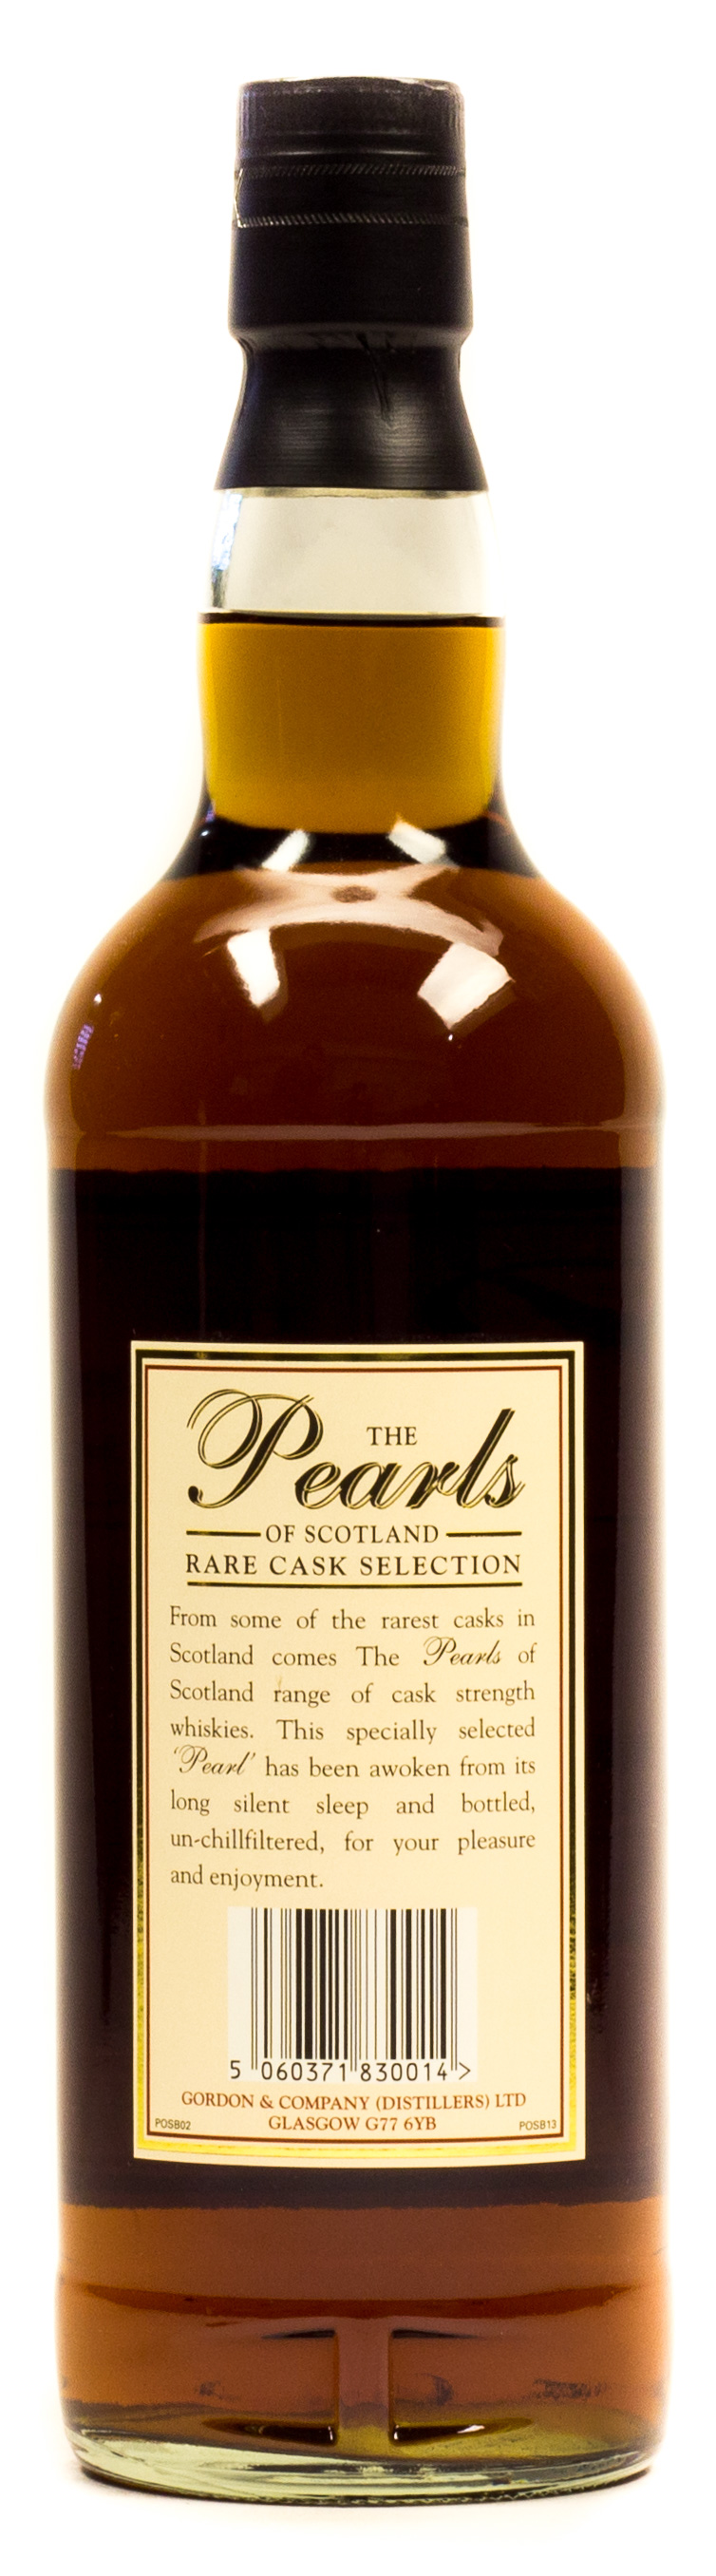 Ben Nevis 1997 The Pearls of Scotland Single Malt Scotch Whisky 0,7 l